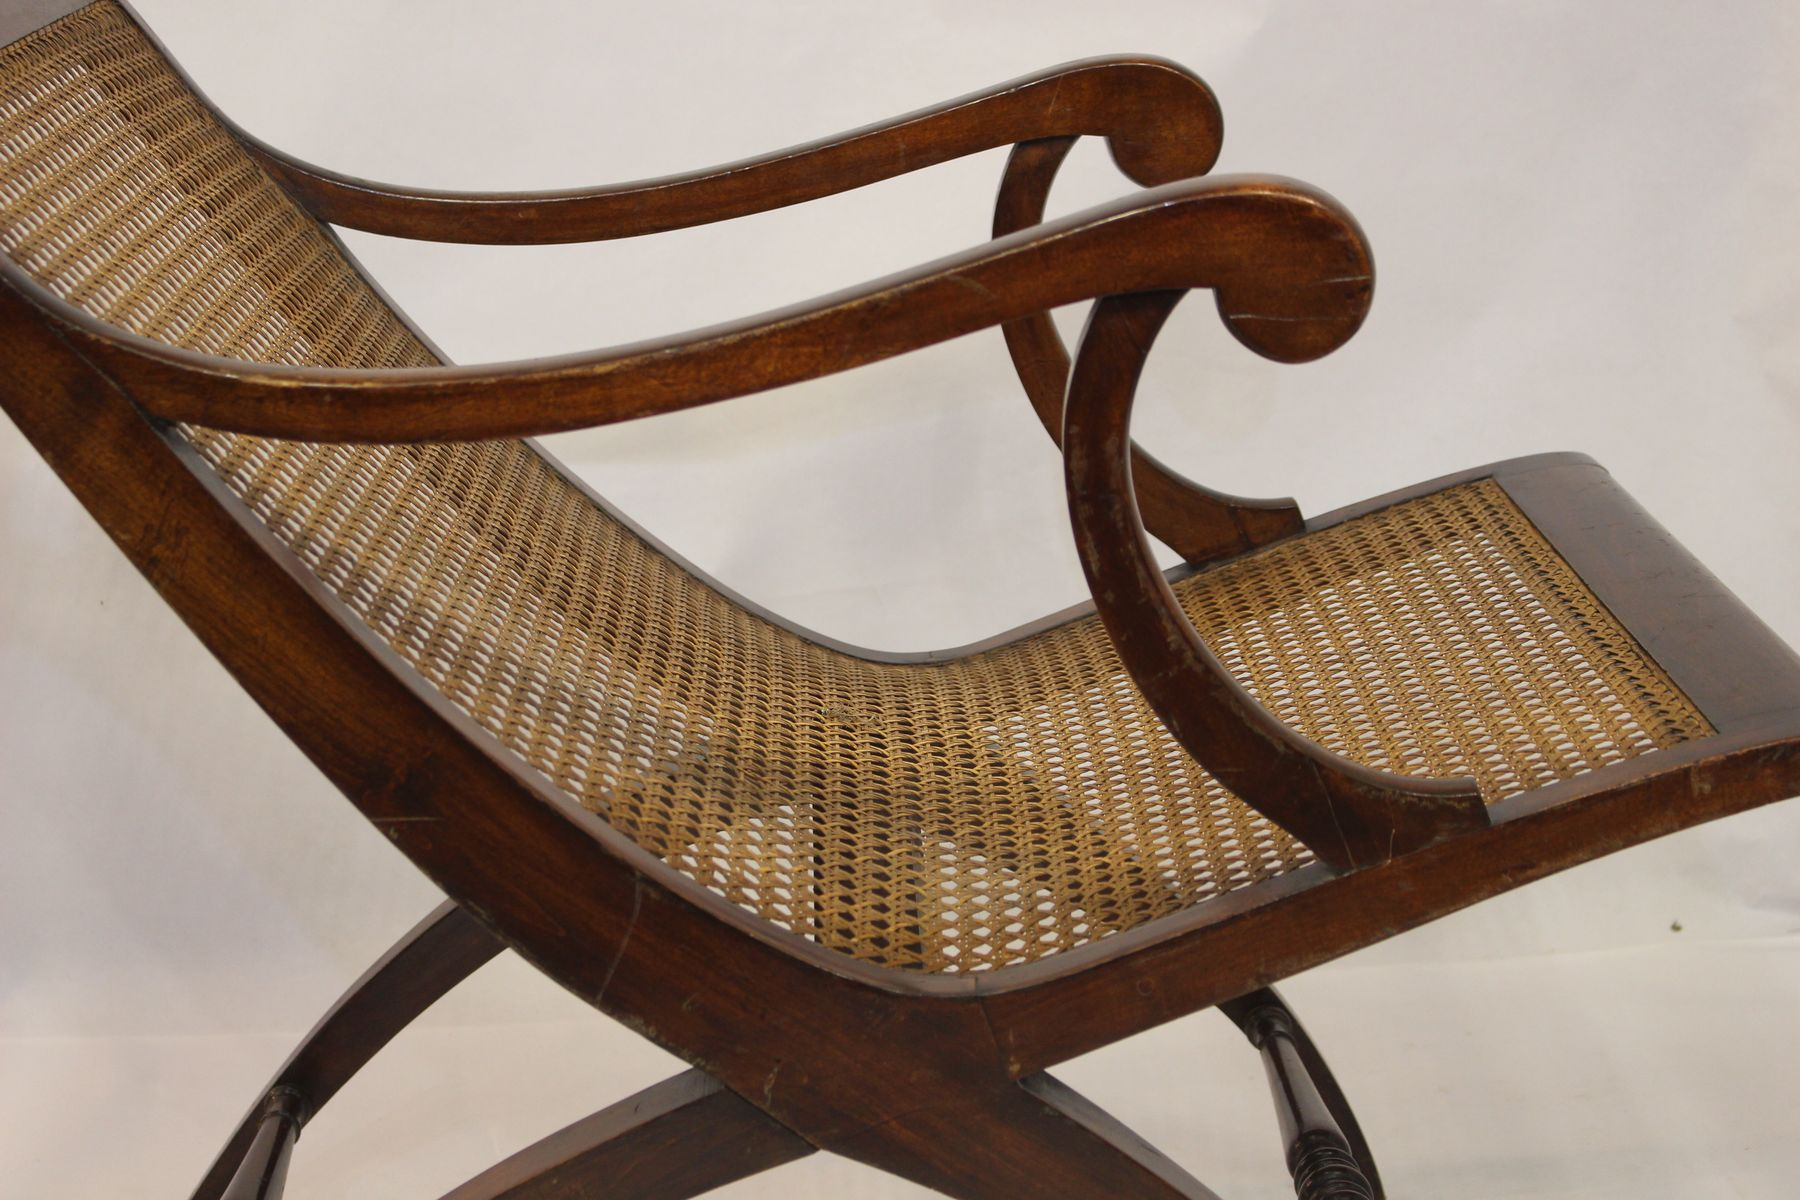 Vintage cane rocking chair - Antique French Caned Lounge Chair